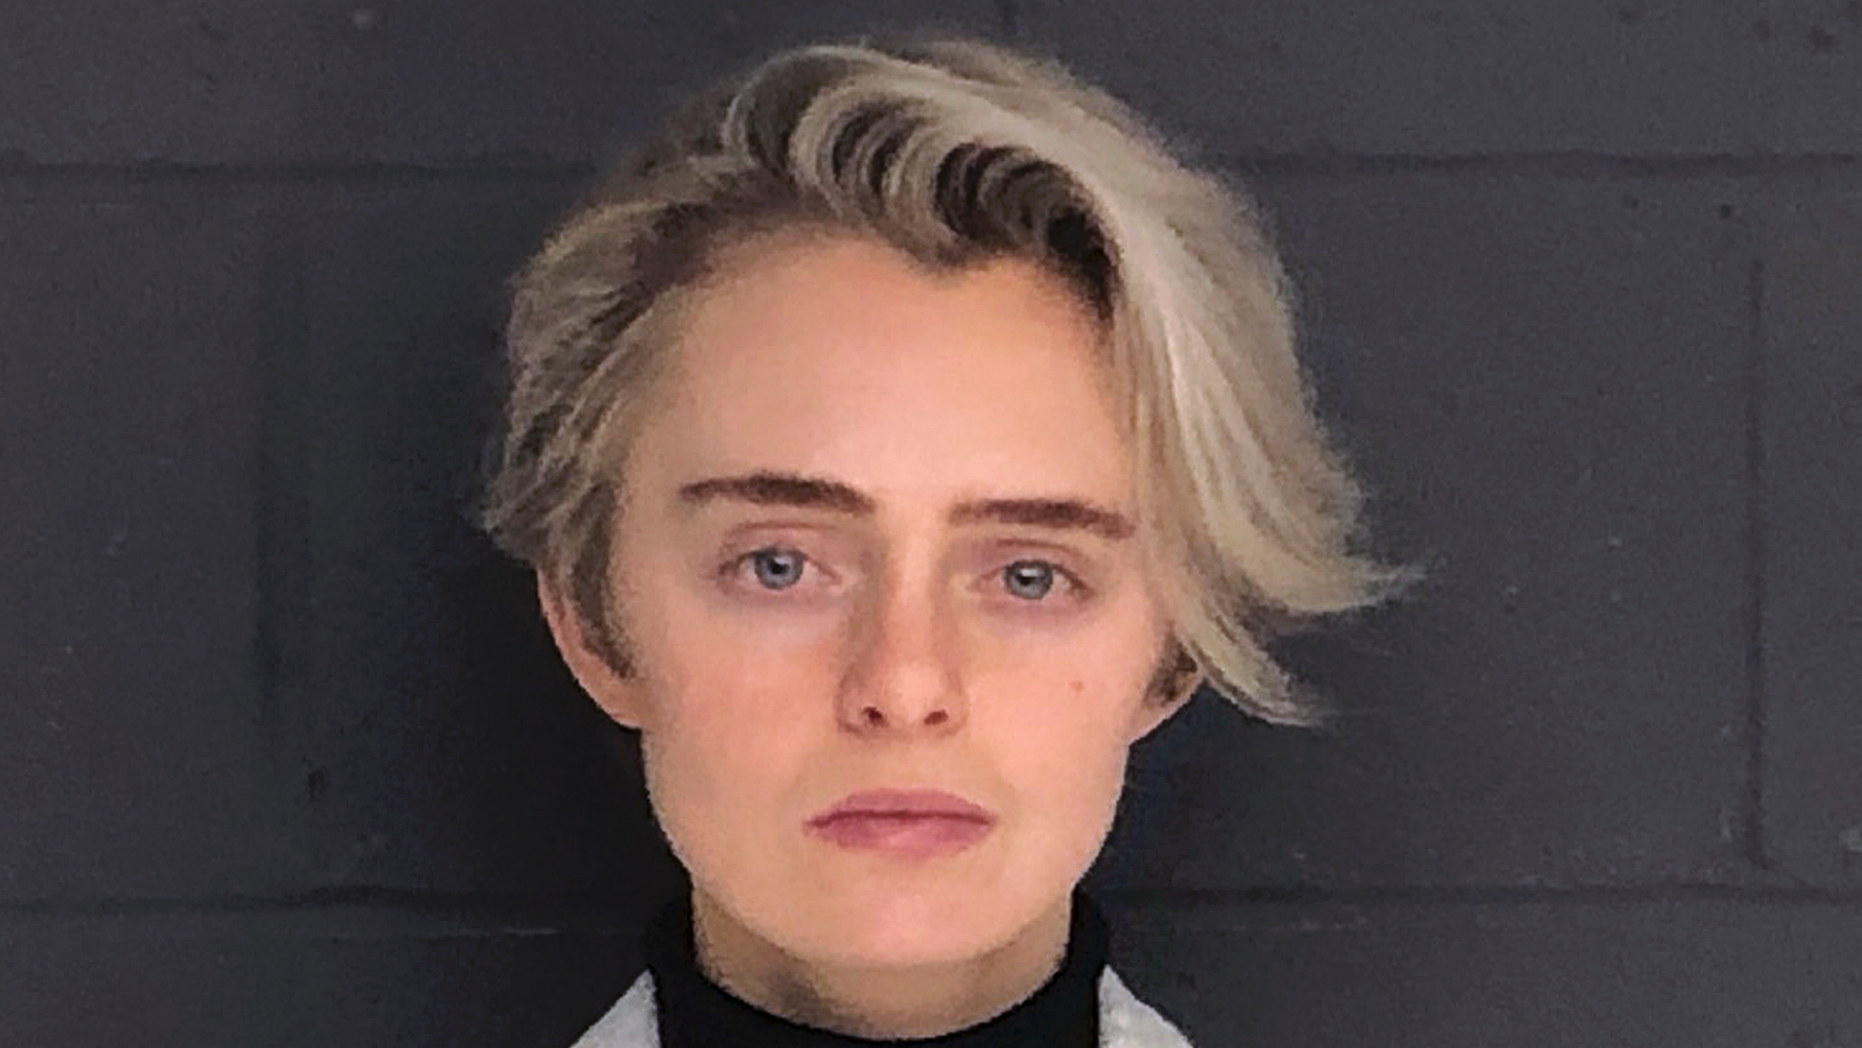 "FILE - This Monday, Feb. 11, 2019, booking photo released by the Bristol County Sheriff's Office shows Michelle Carter, ordered to start serving a 15-month jail sentence for her involuntary manslaughter conviction for sending a barrage of text messages urging boyfriend Conrad Roy III to kill himself. Roy took his own life in Fairhaven, Mass., in July 2014. An attorney for Lynn Roy, the boy's mother, said Tuesday, April 9, that her wrongful death suit against Carter had been ""resolved."" (Bristol County Sheriff's Office via AP, File)"